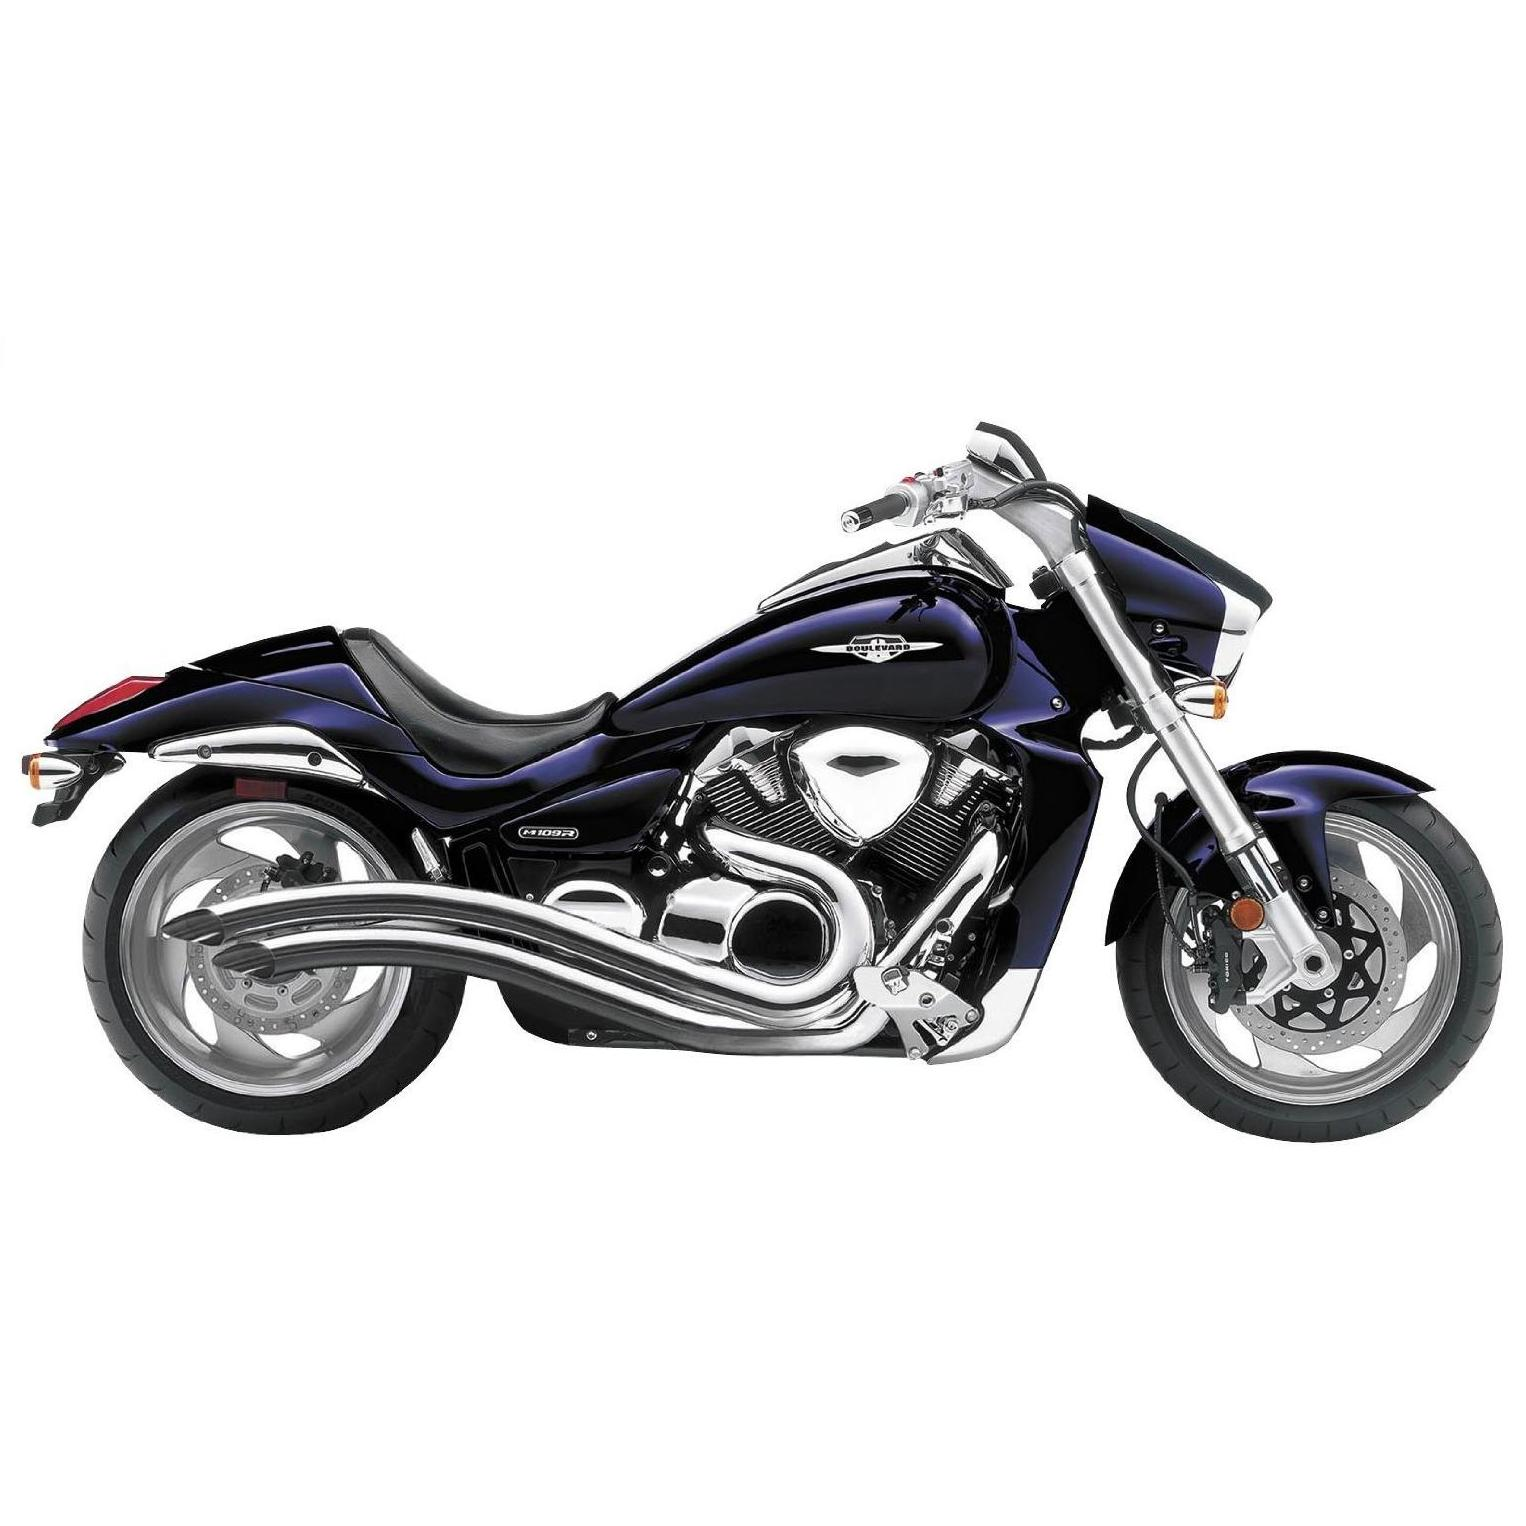 Get it delivered to your door - COBRA Speedster Swept Exhaust for Suzuki M109R Boulevard - #3221T - 15900 (EGP)